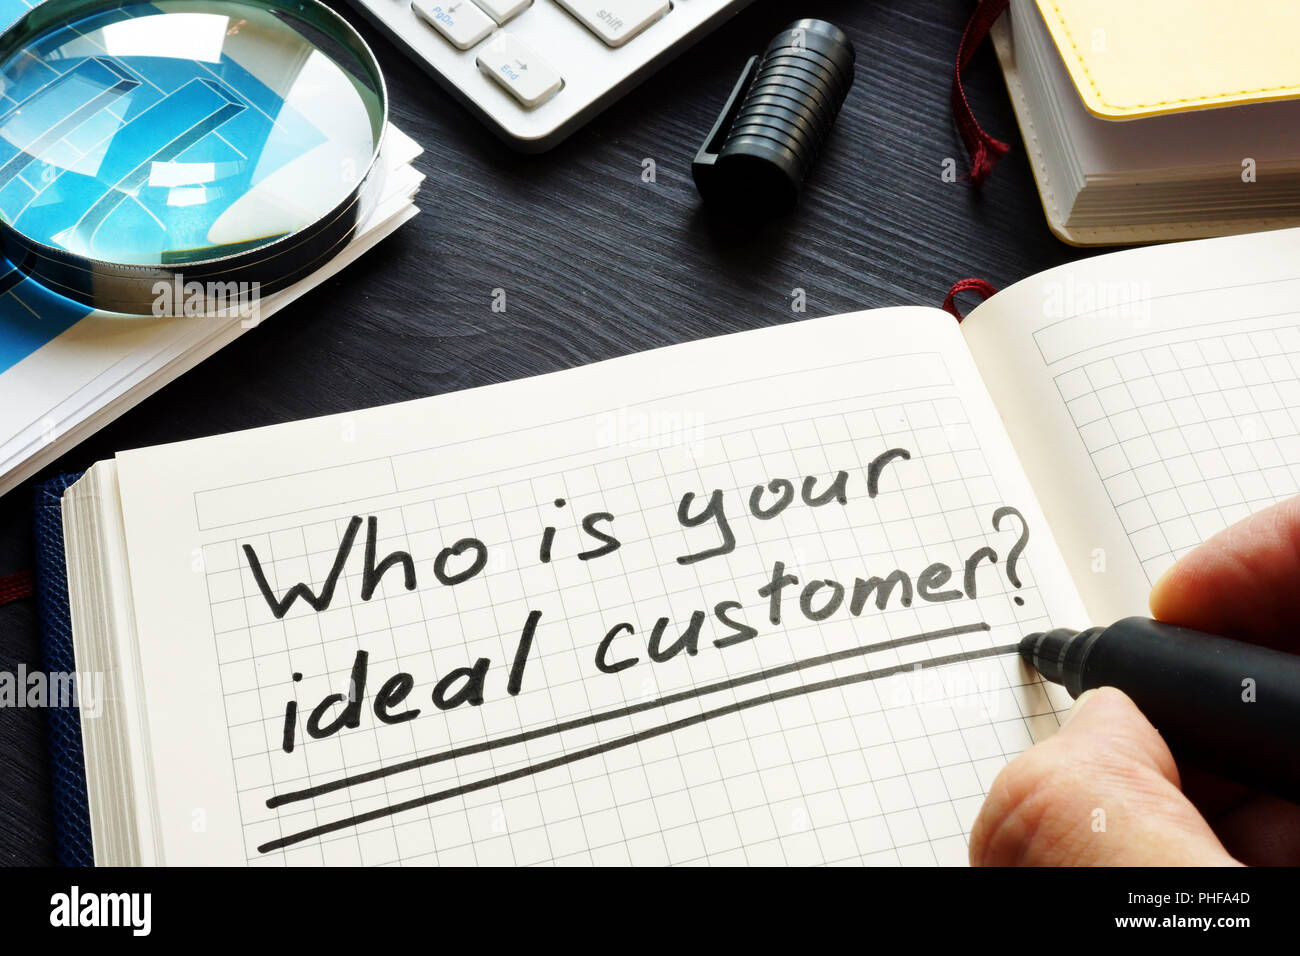 Who is your ideal customer handwritten in a note. Loyalty and satisfaction. - Stock Image